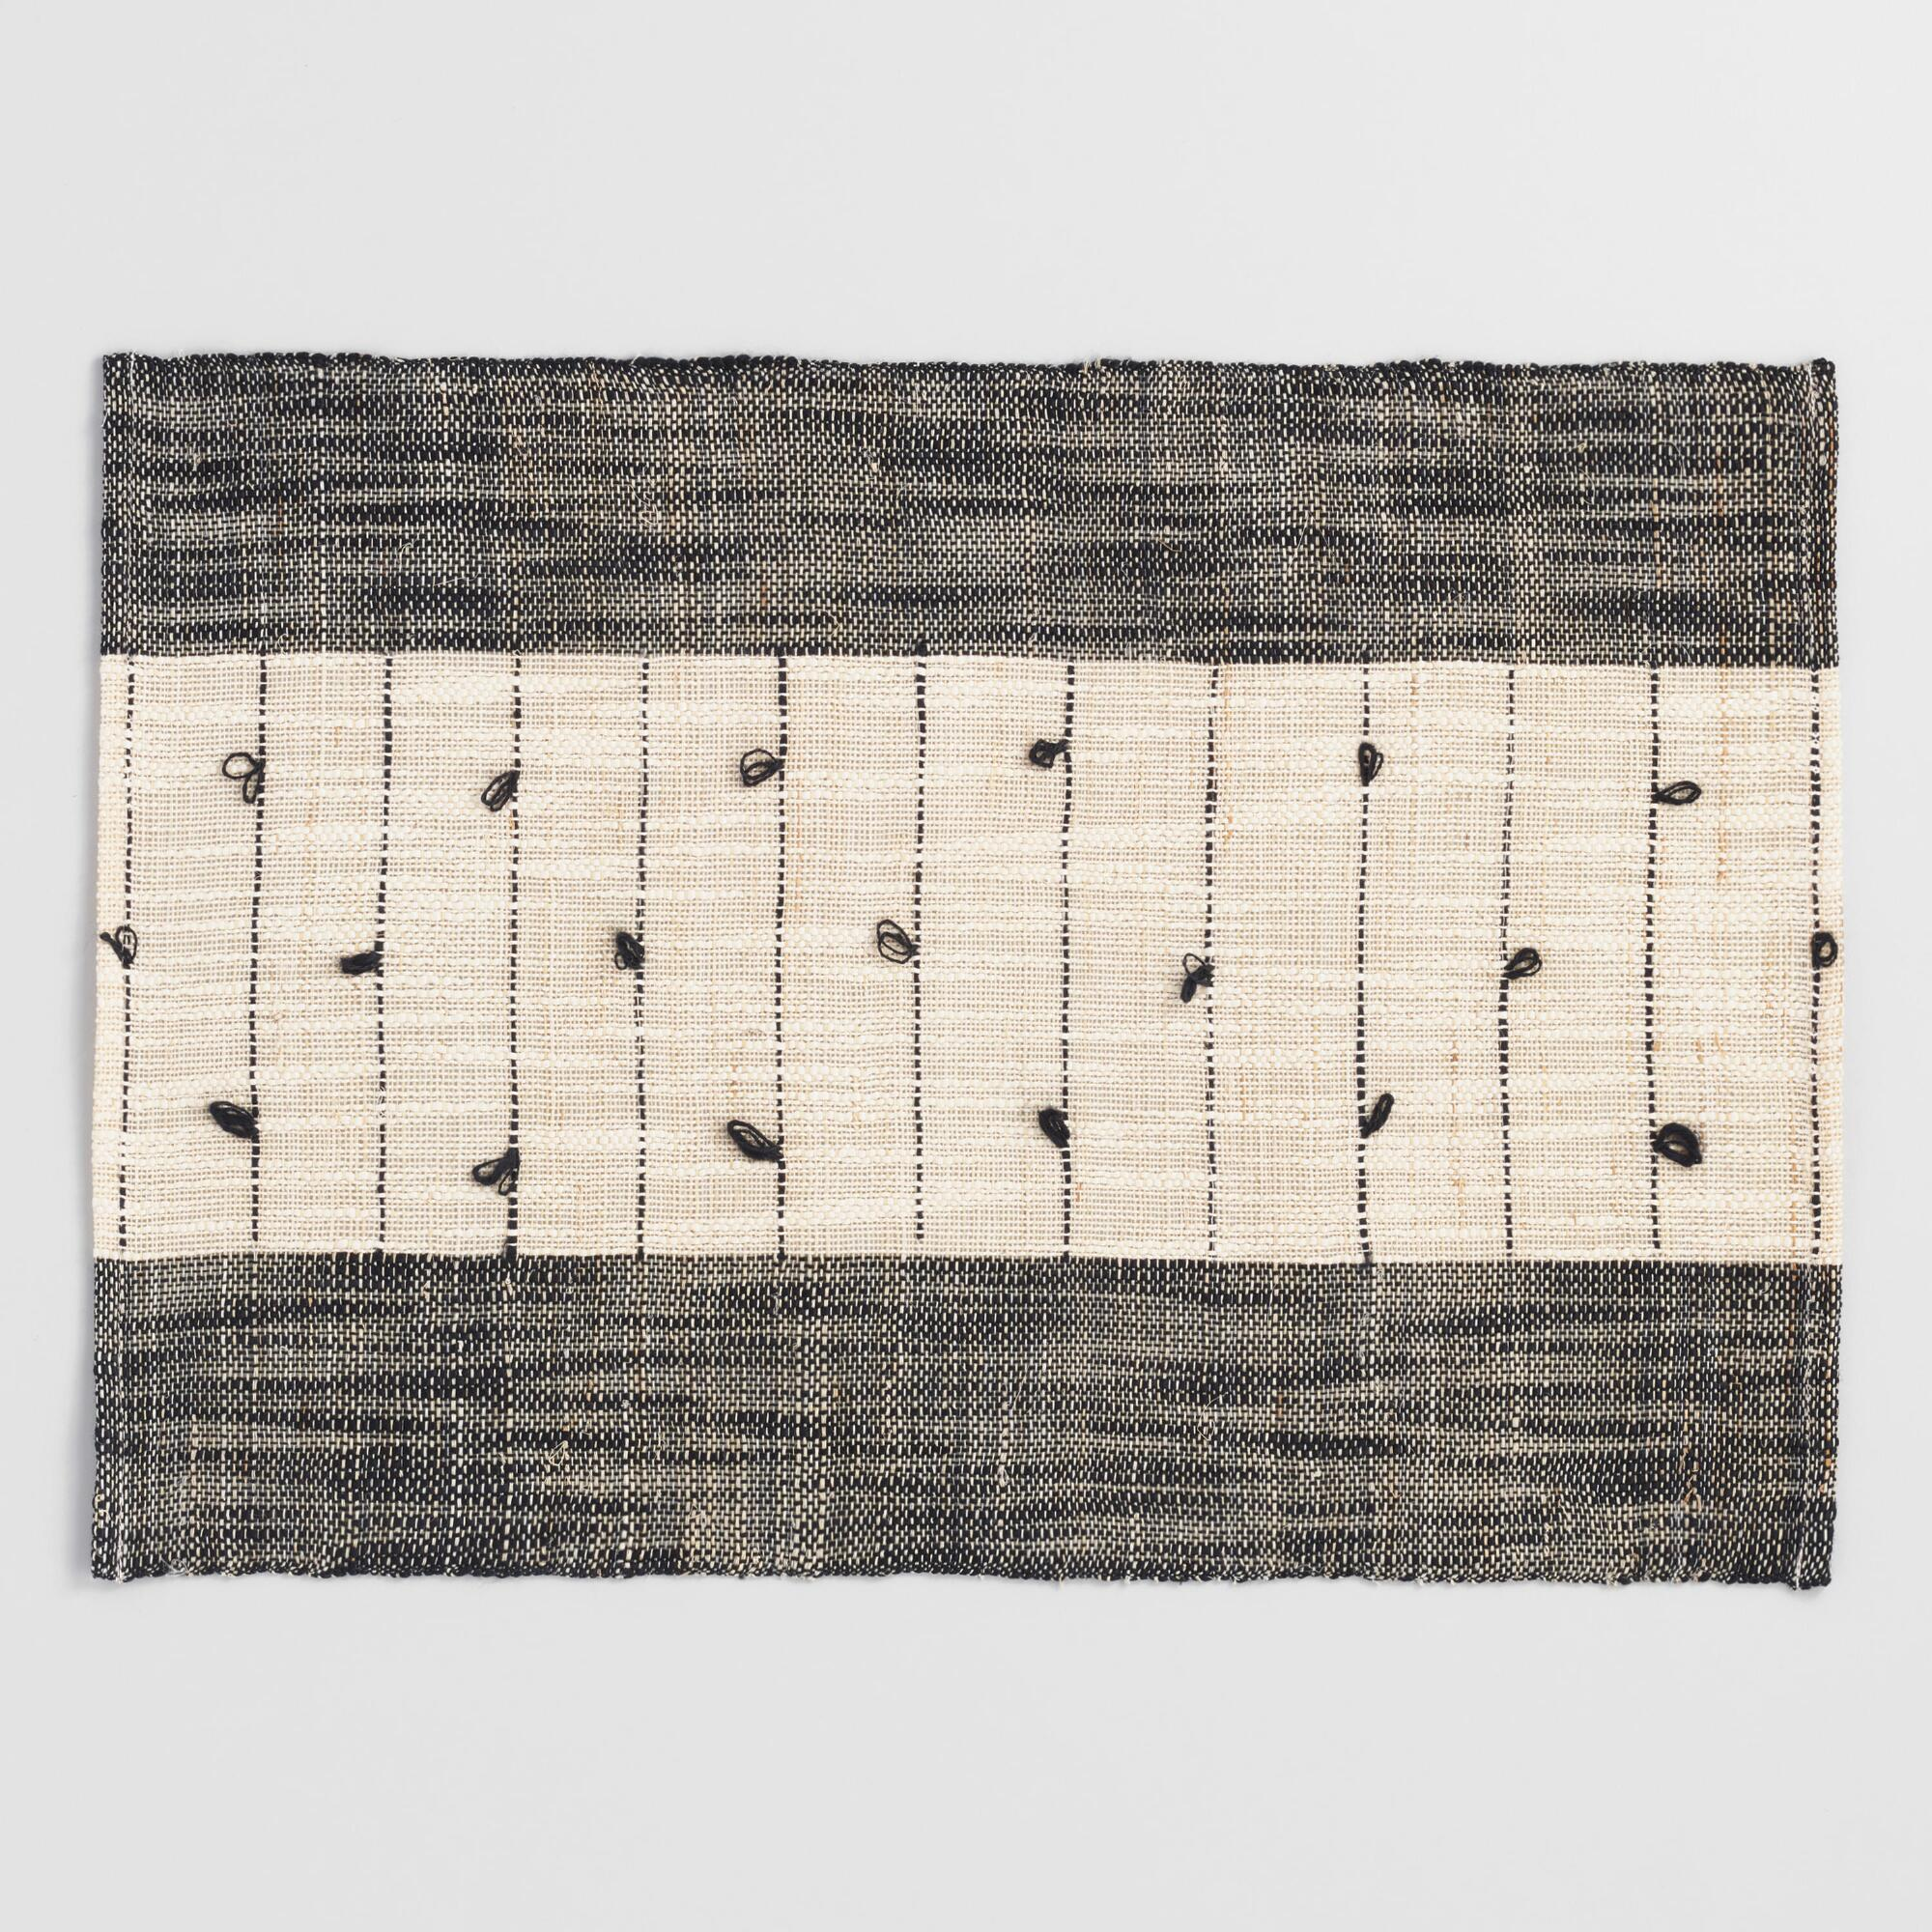 Black and White Natural Fiber Woven Placemats Set of 4 by World Market